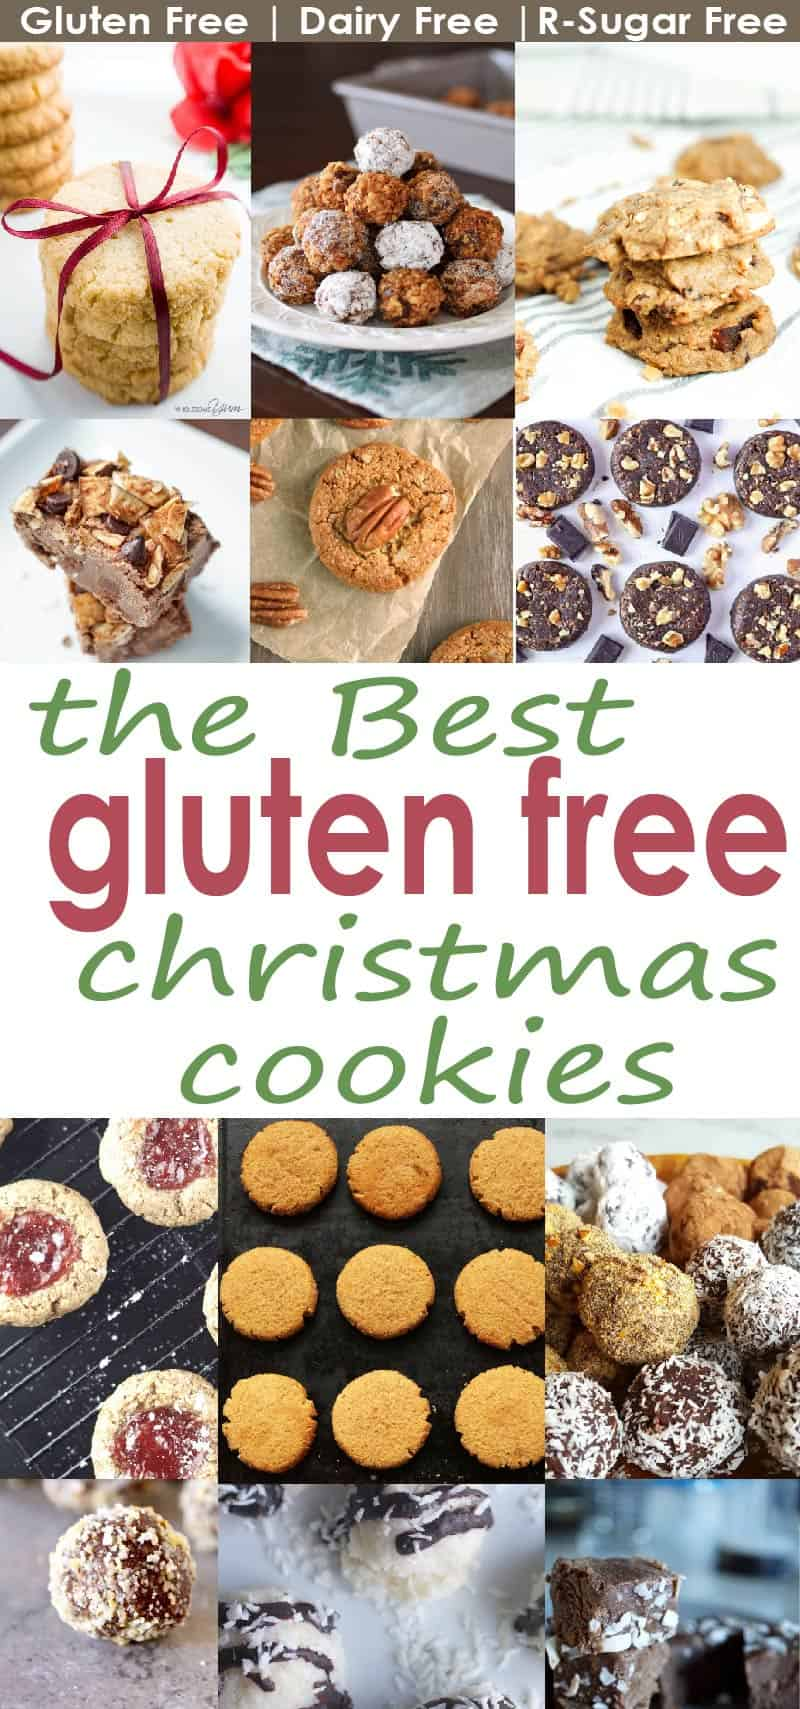 Being gluten free doesn't mean you have to go without this holiday season. These delicious gluten free cookies that will rival the gluten-filled versions.